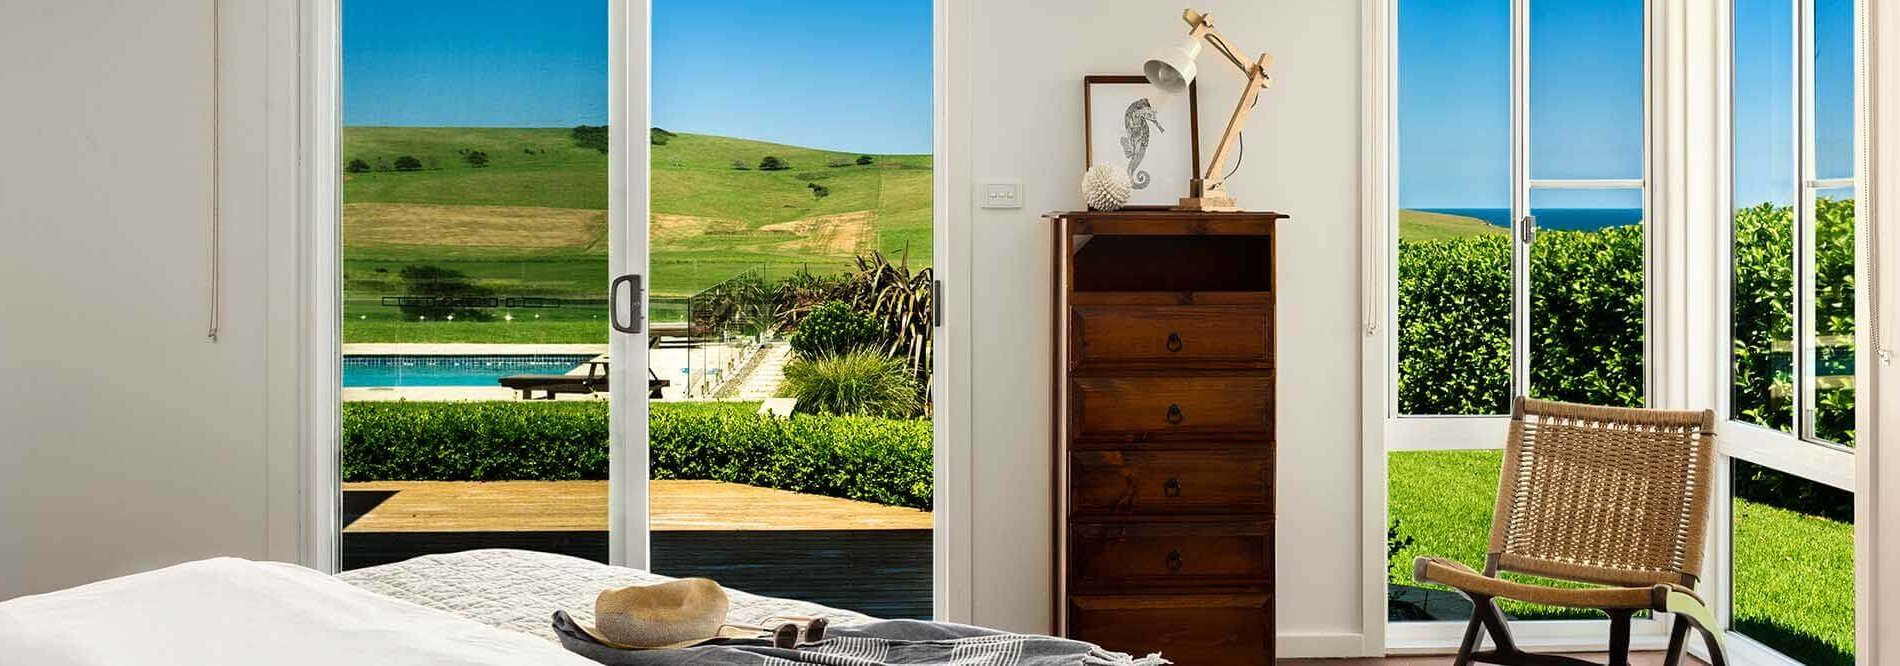 Seacliff House Gerringong Accommodation